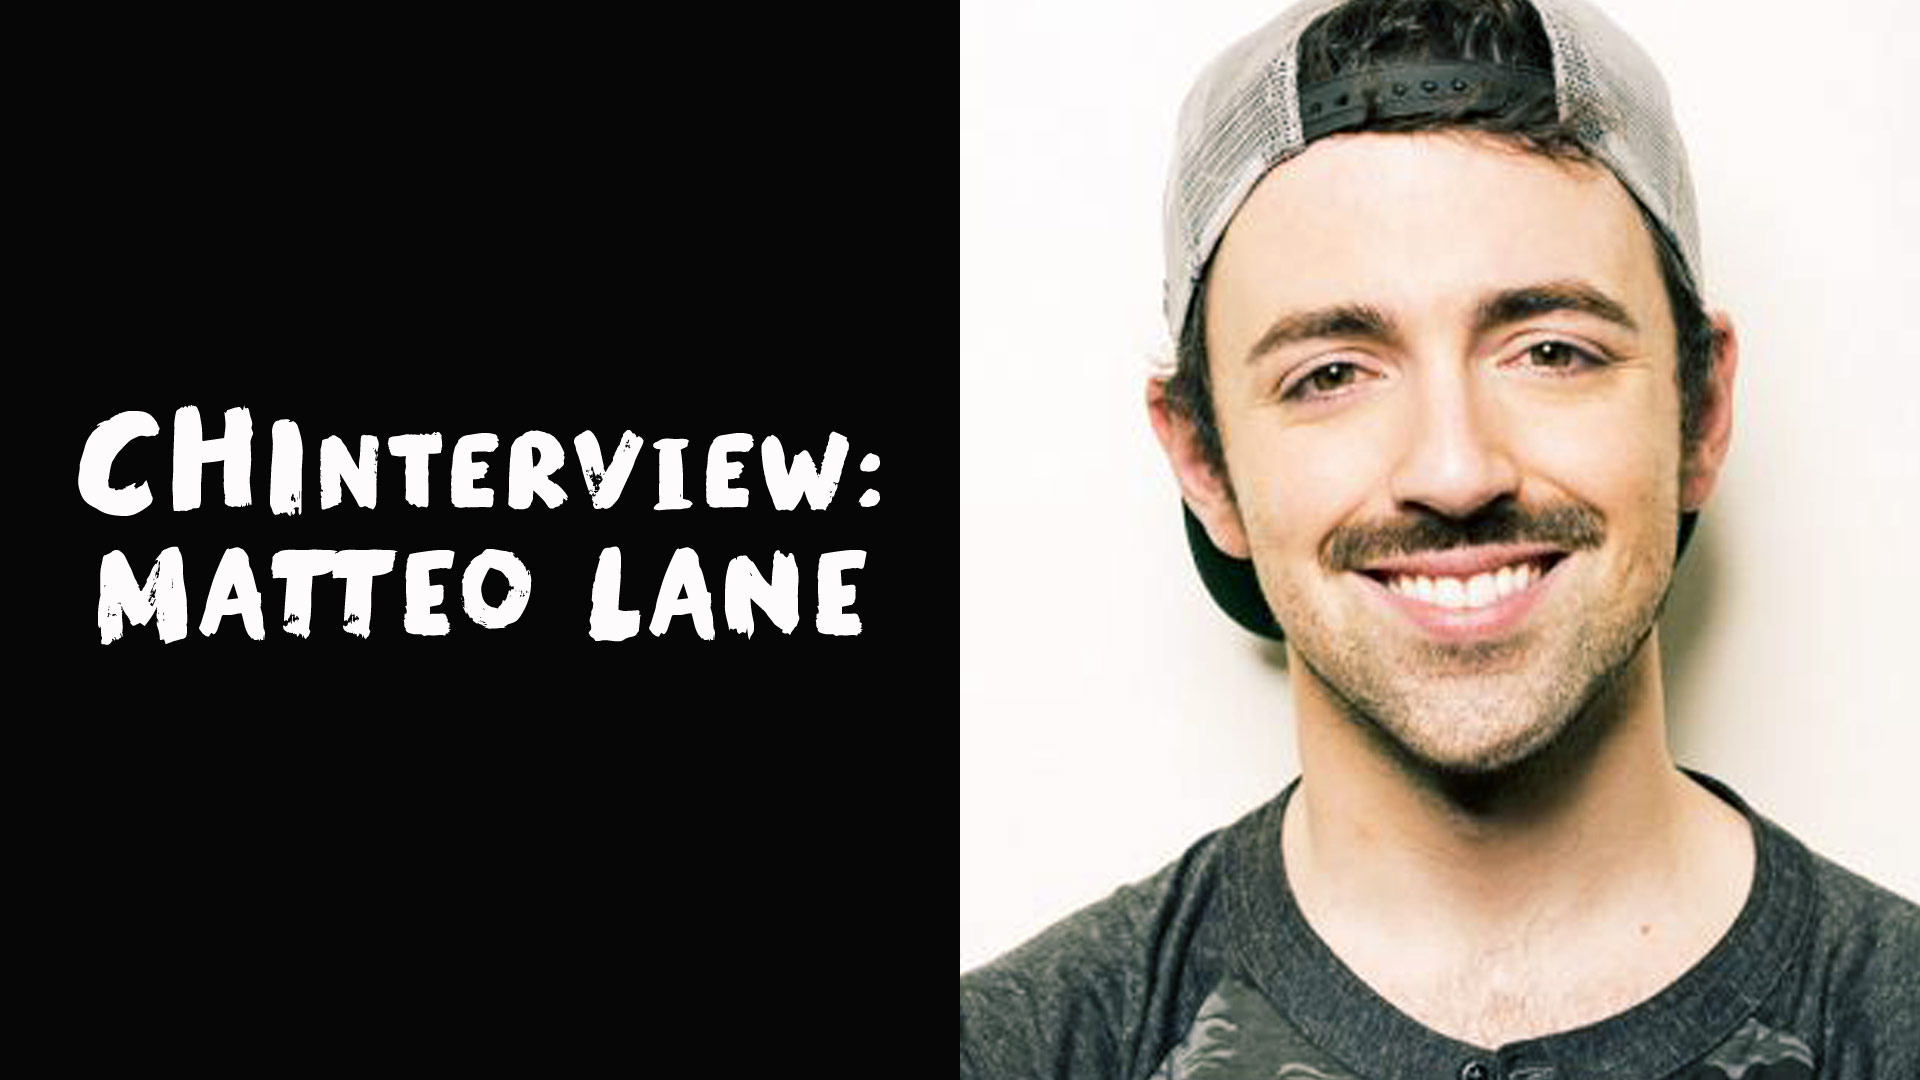 The CHInterview: Matteo Lane